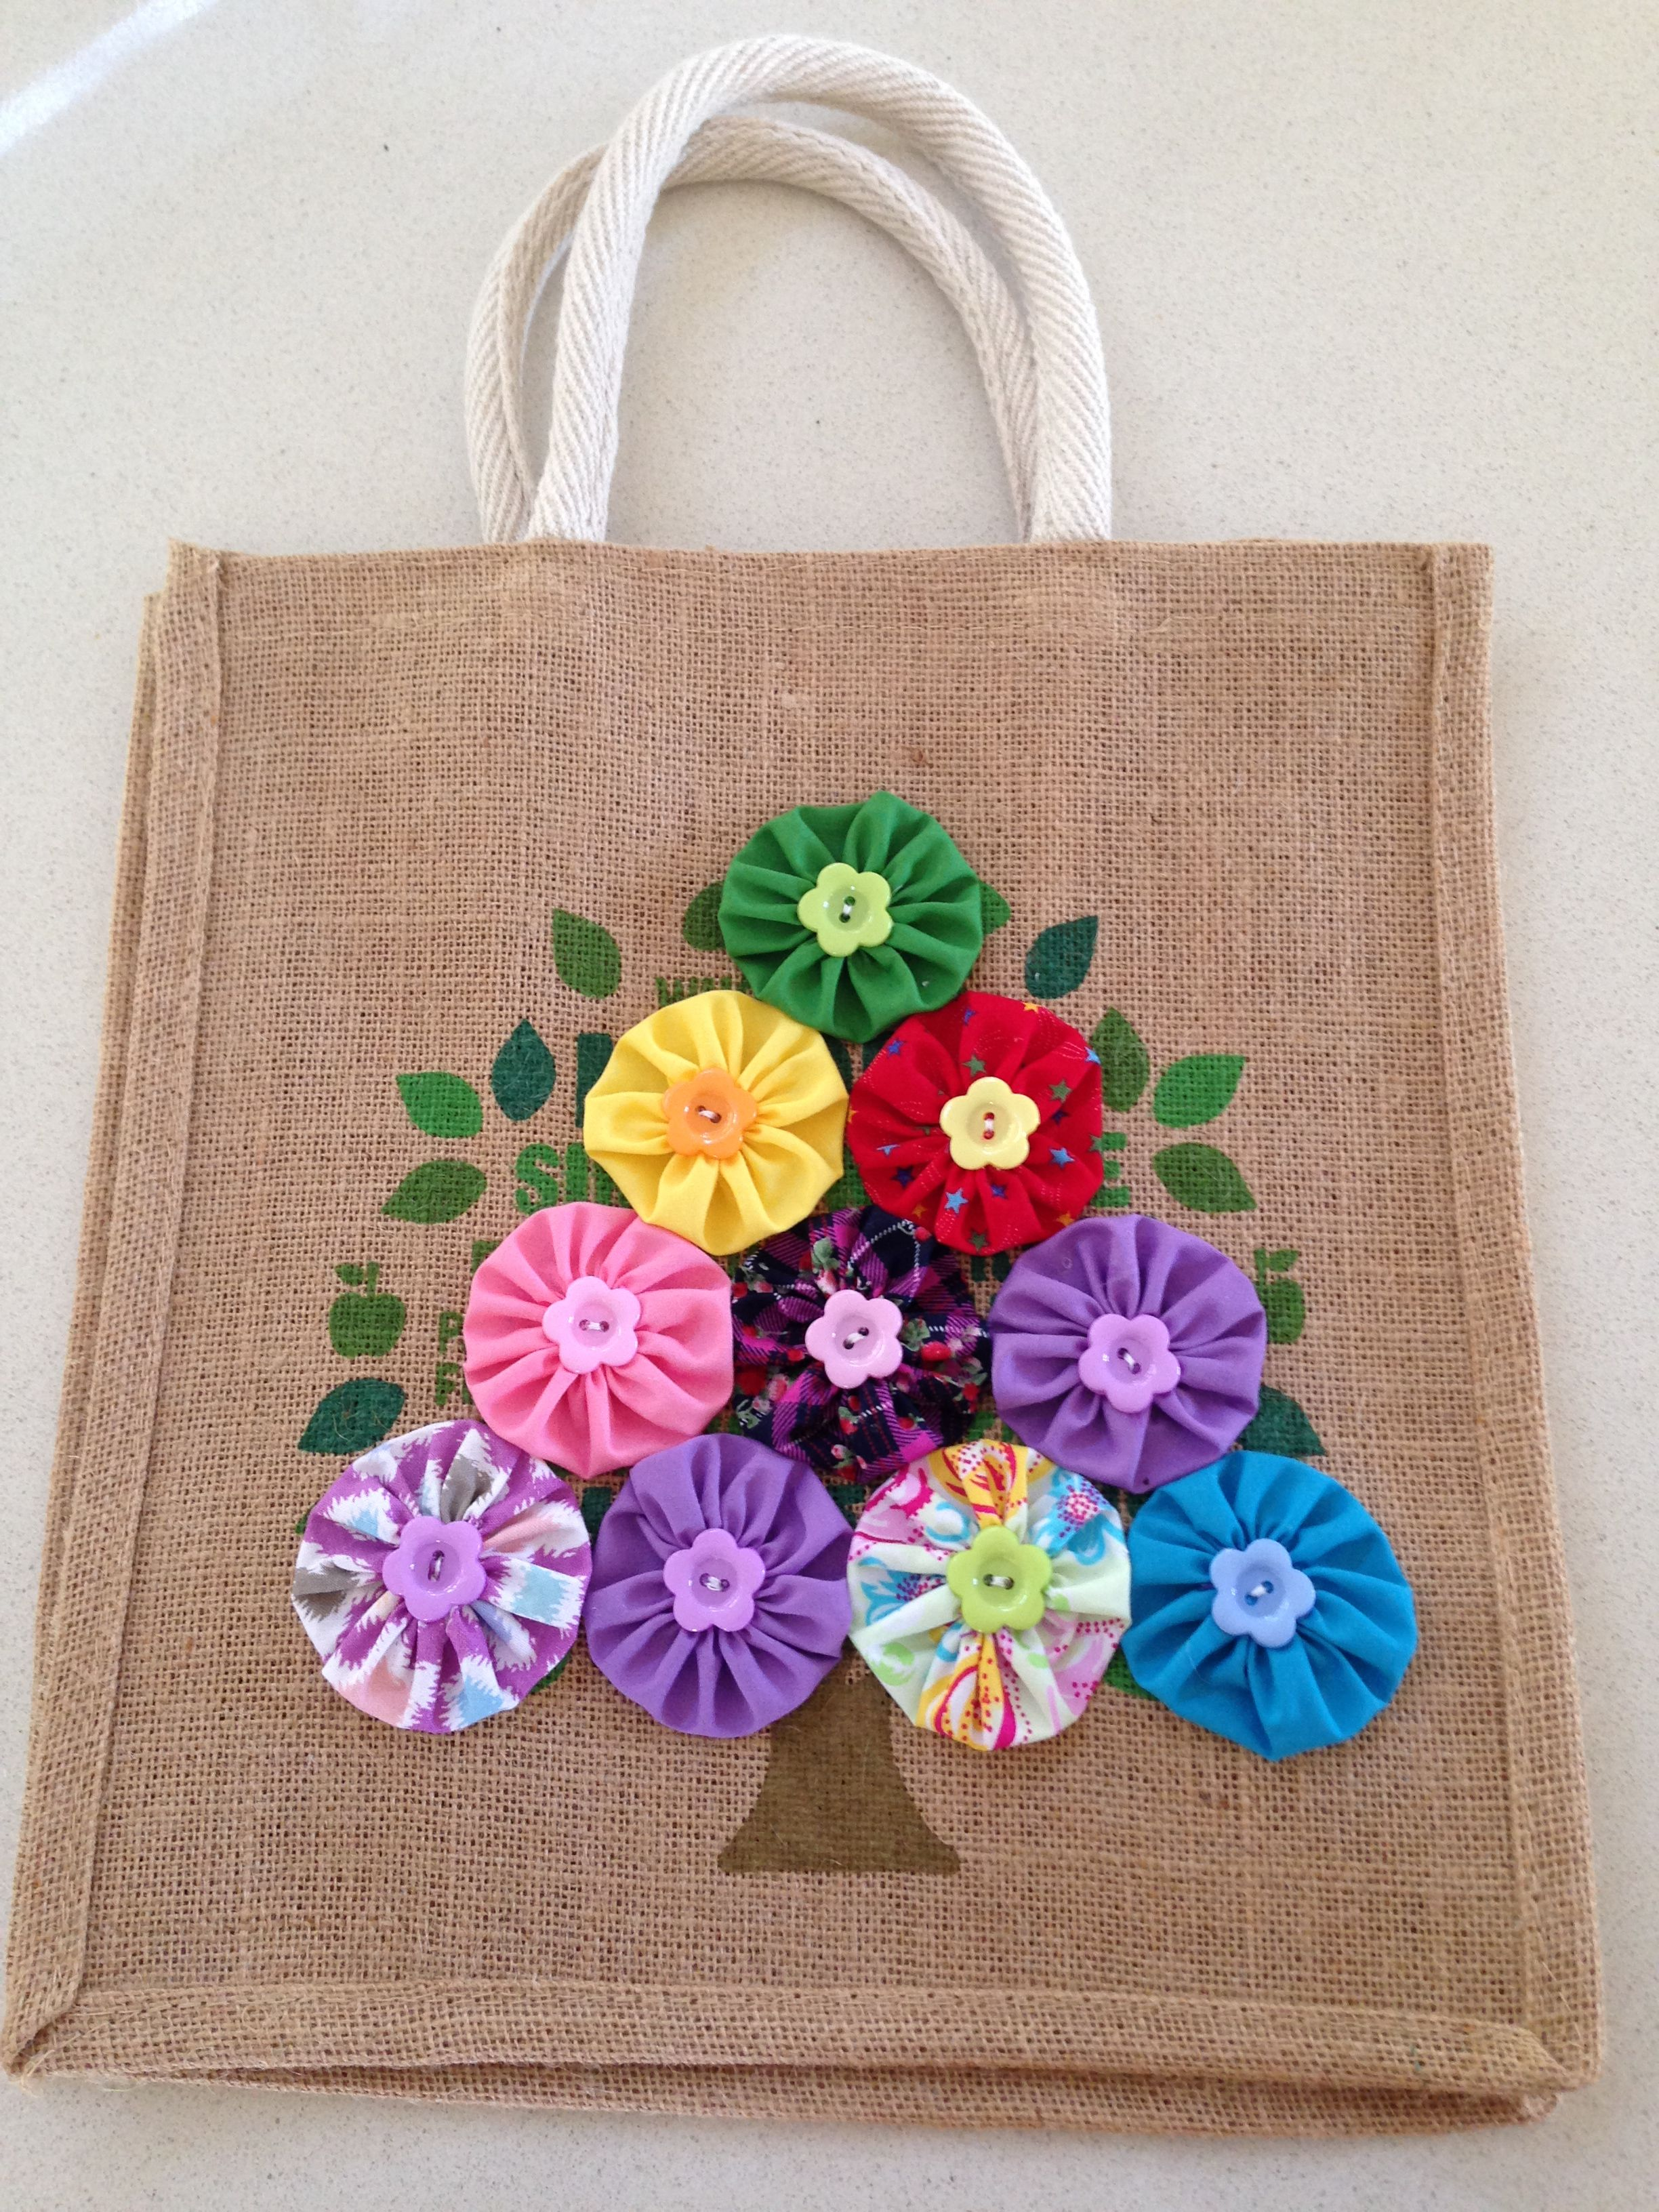 Patchwork Taschen Selber Machen Hessian Bag With Flowers A Diy Way To Add Some Colour And